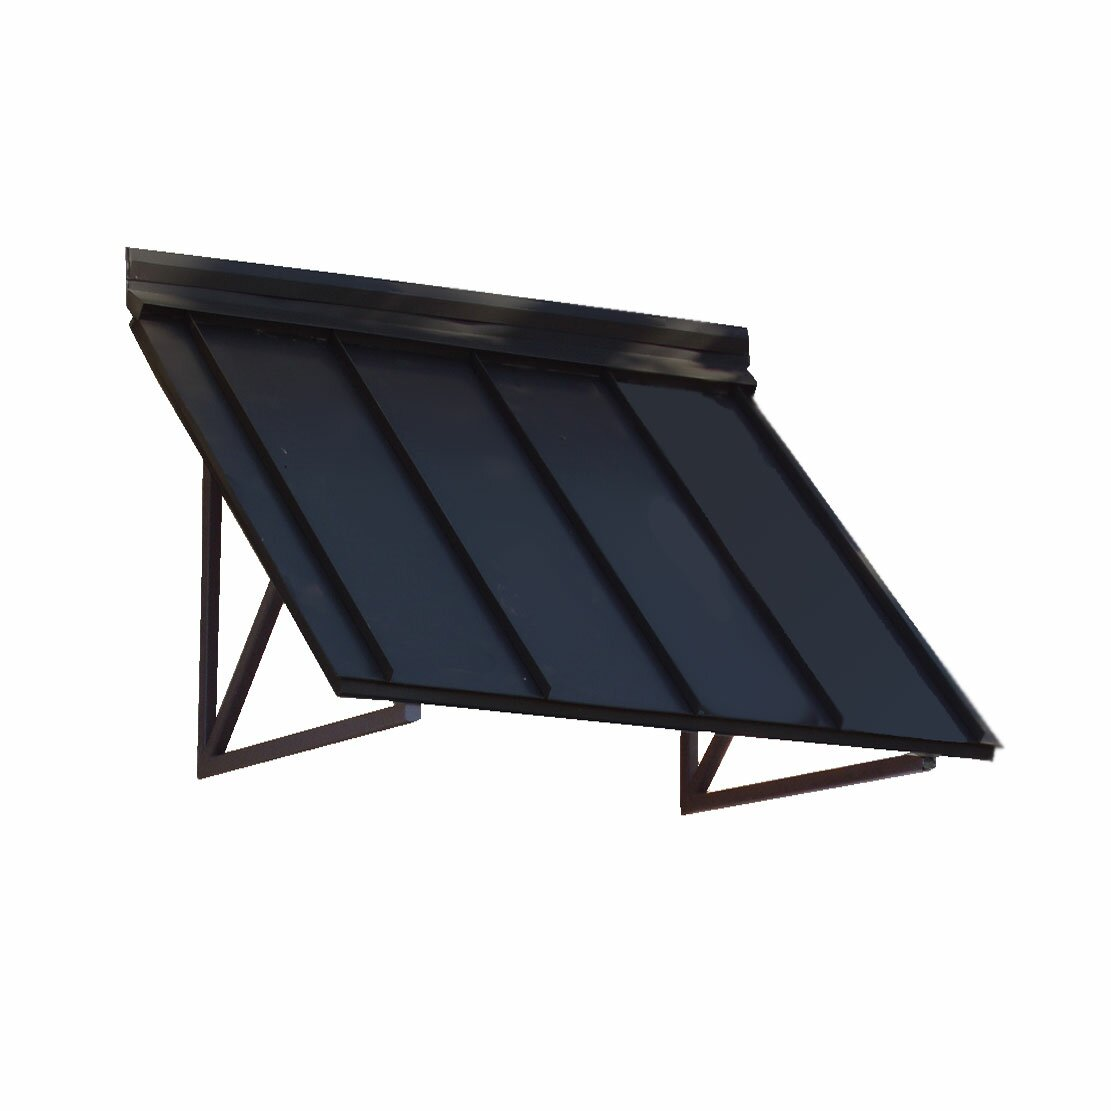 Awntech Houstonian Standing Seam Slope Awning & Reviews